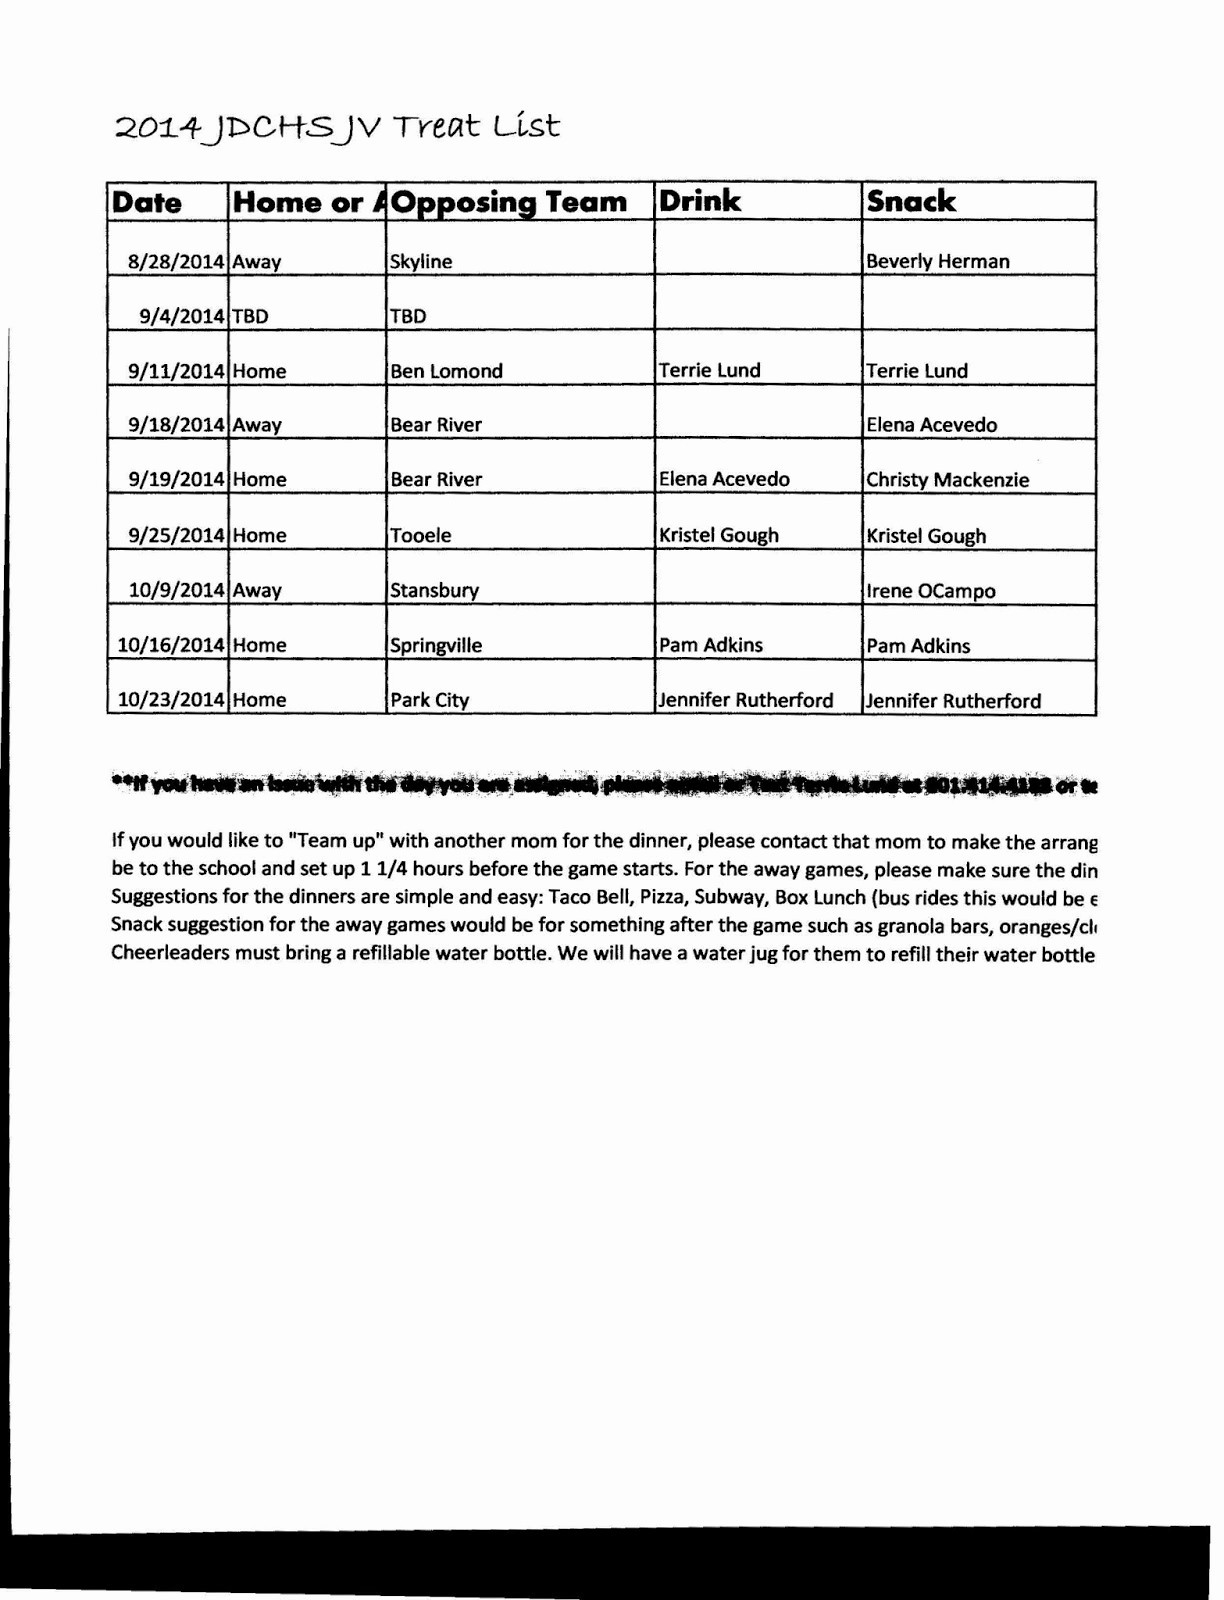 T Ball Snack Schedule Template Best Of Team Snack Schedule Template Here is Link for